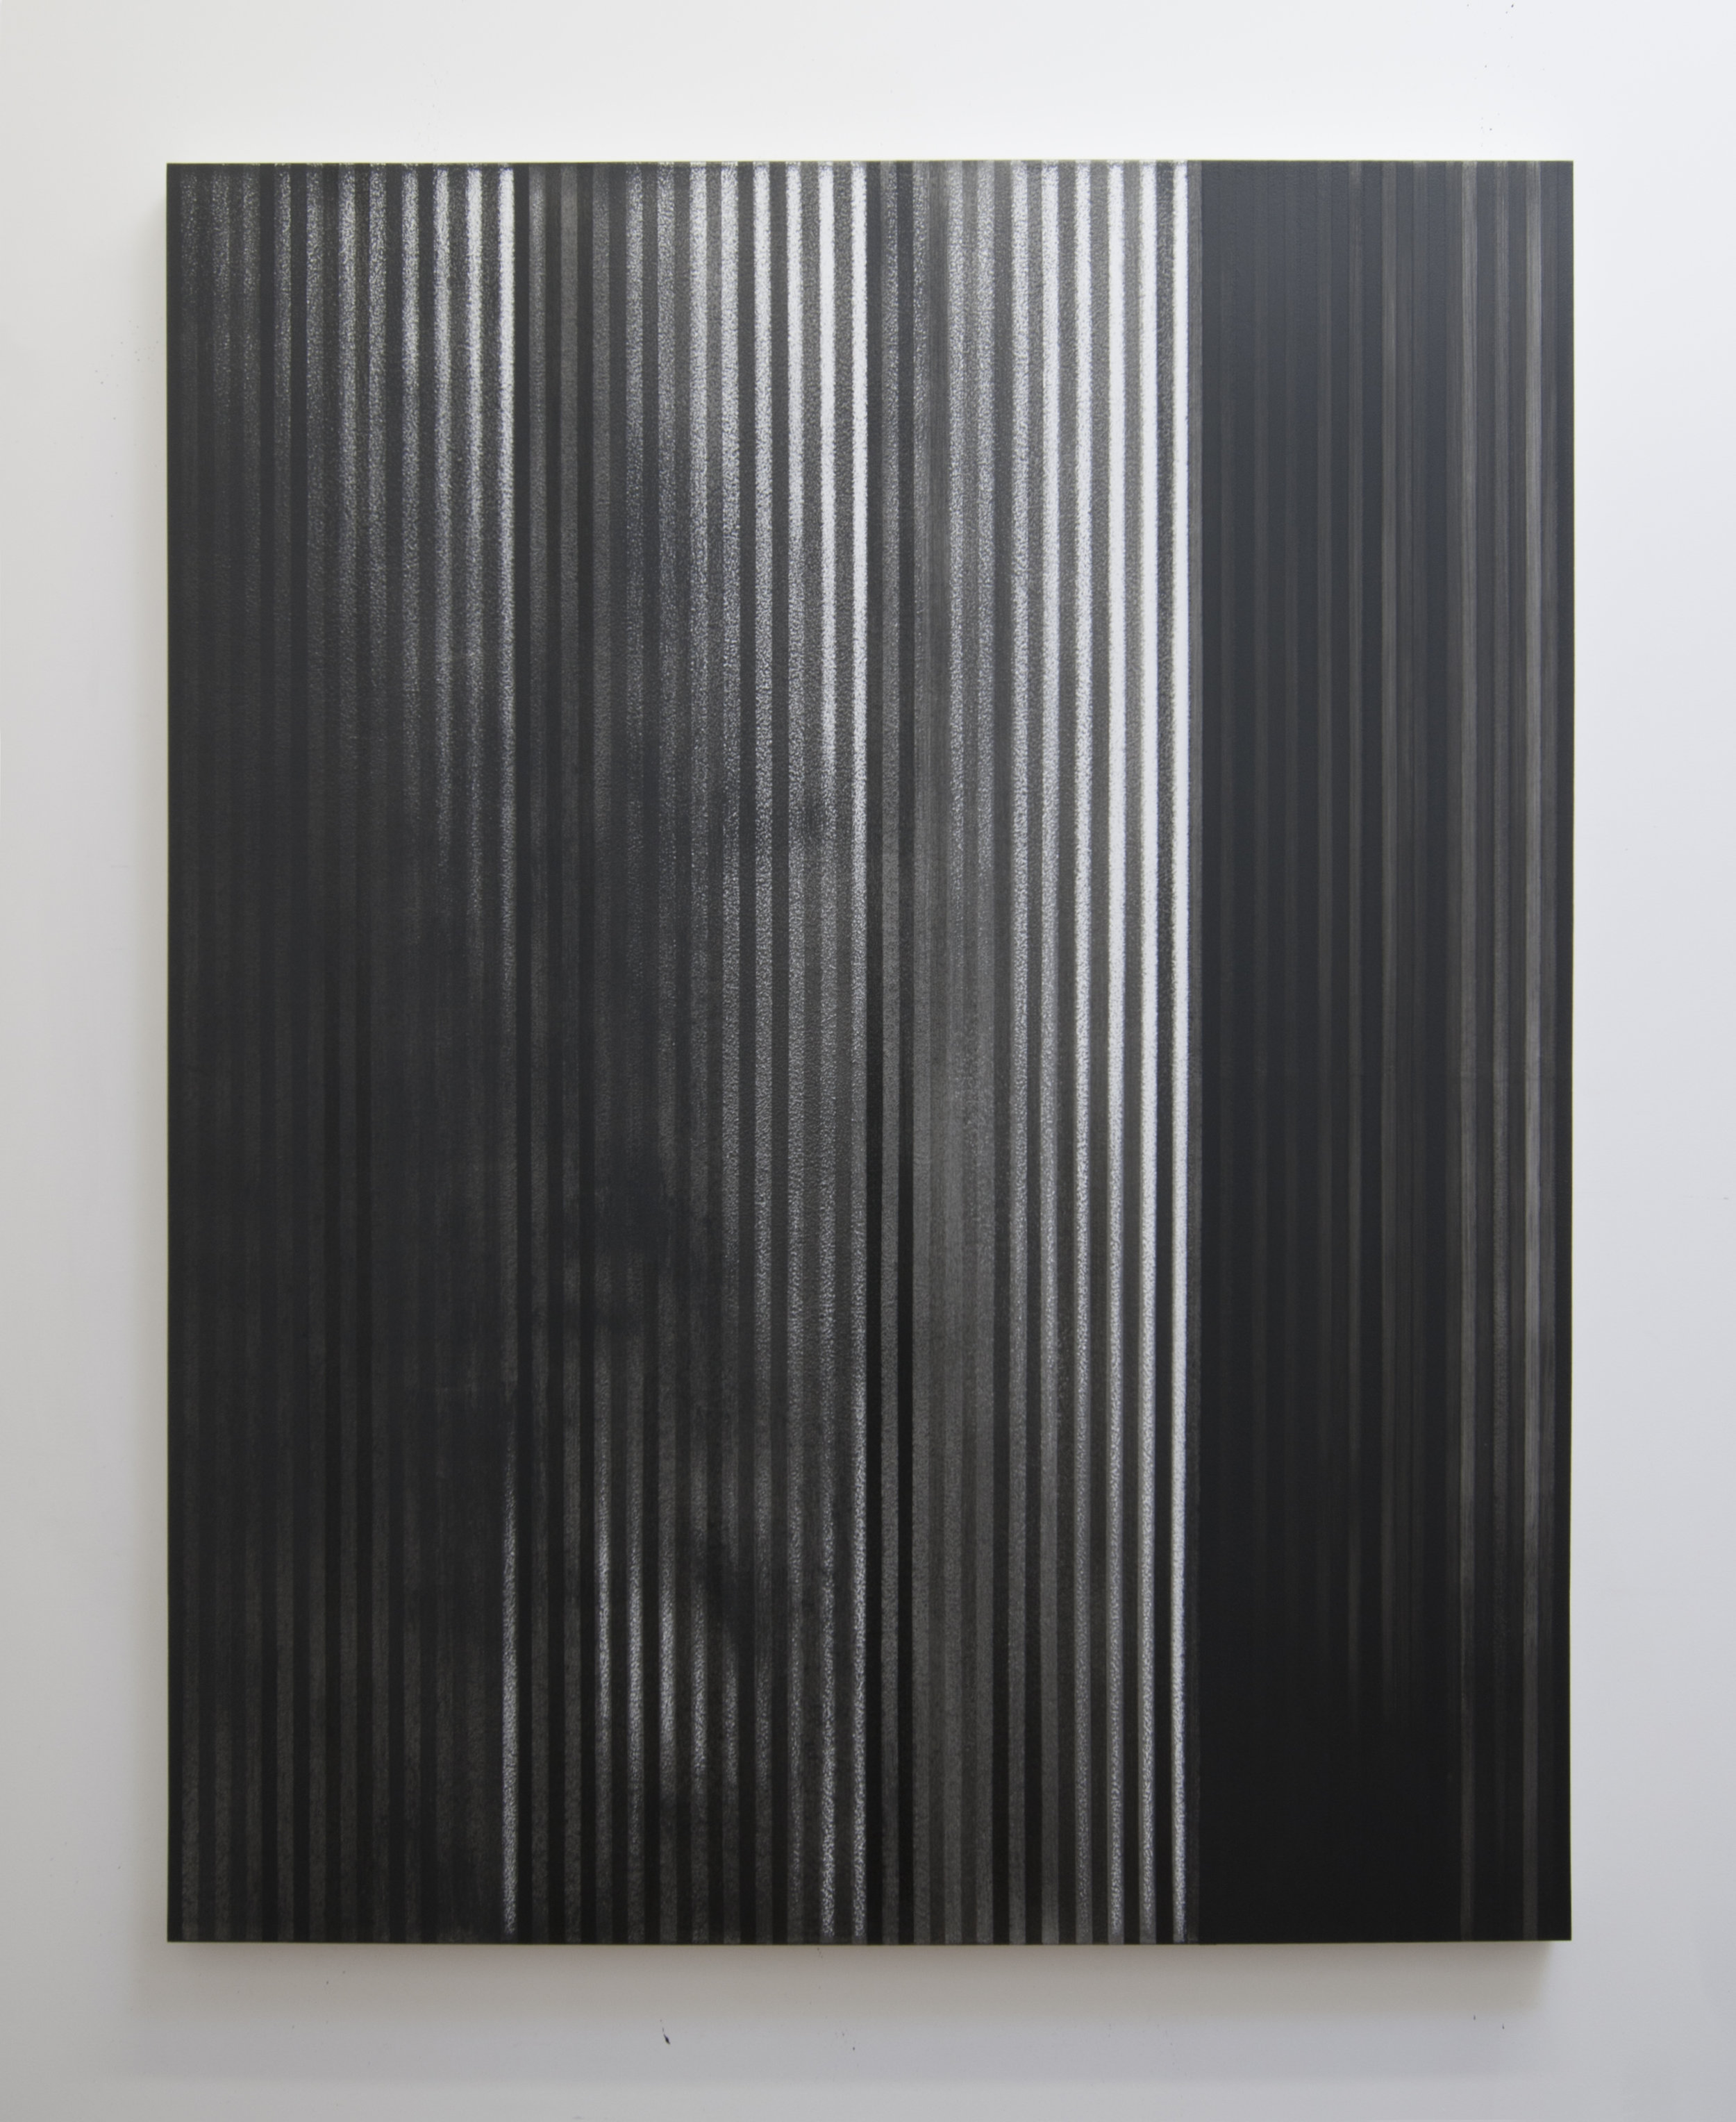 A Show of Force, 2013  Acrylic on panel, 56 x 44 inches